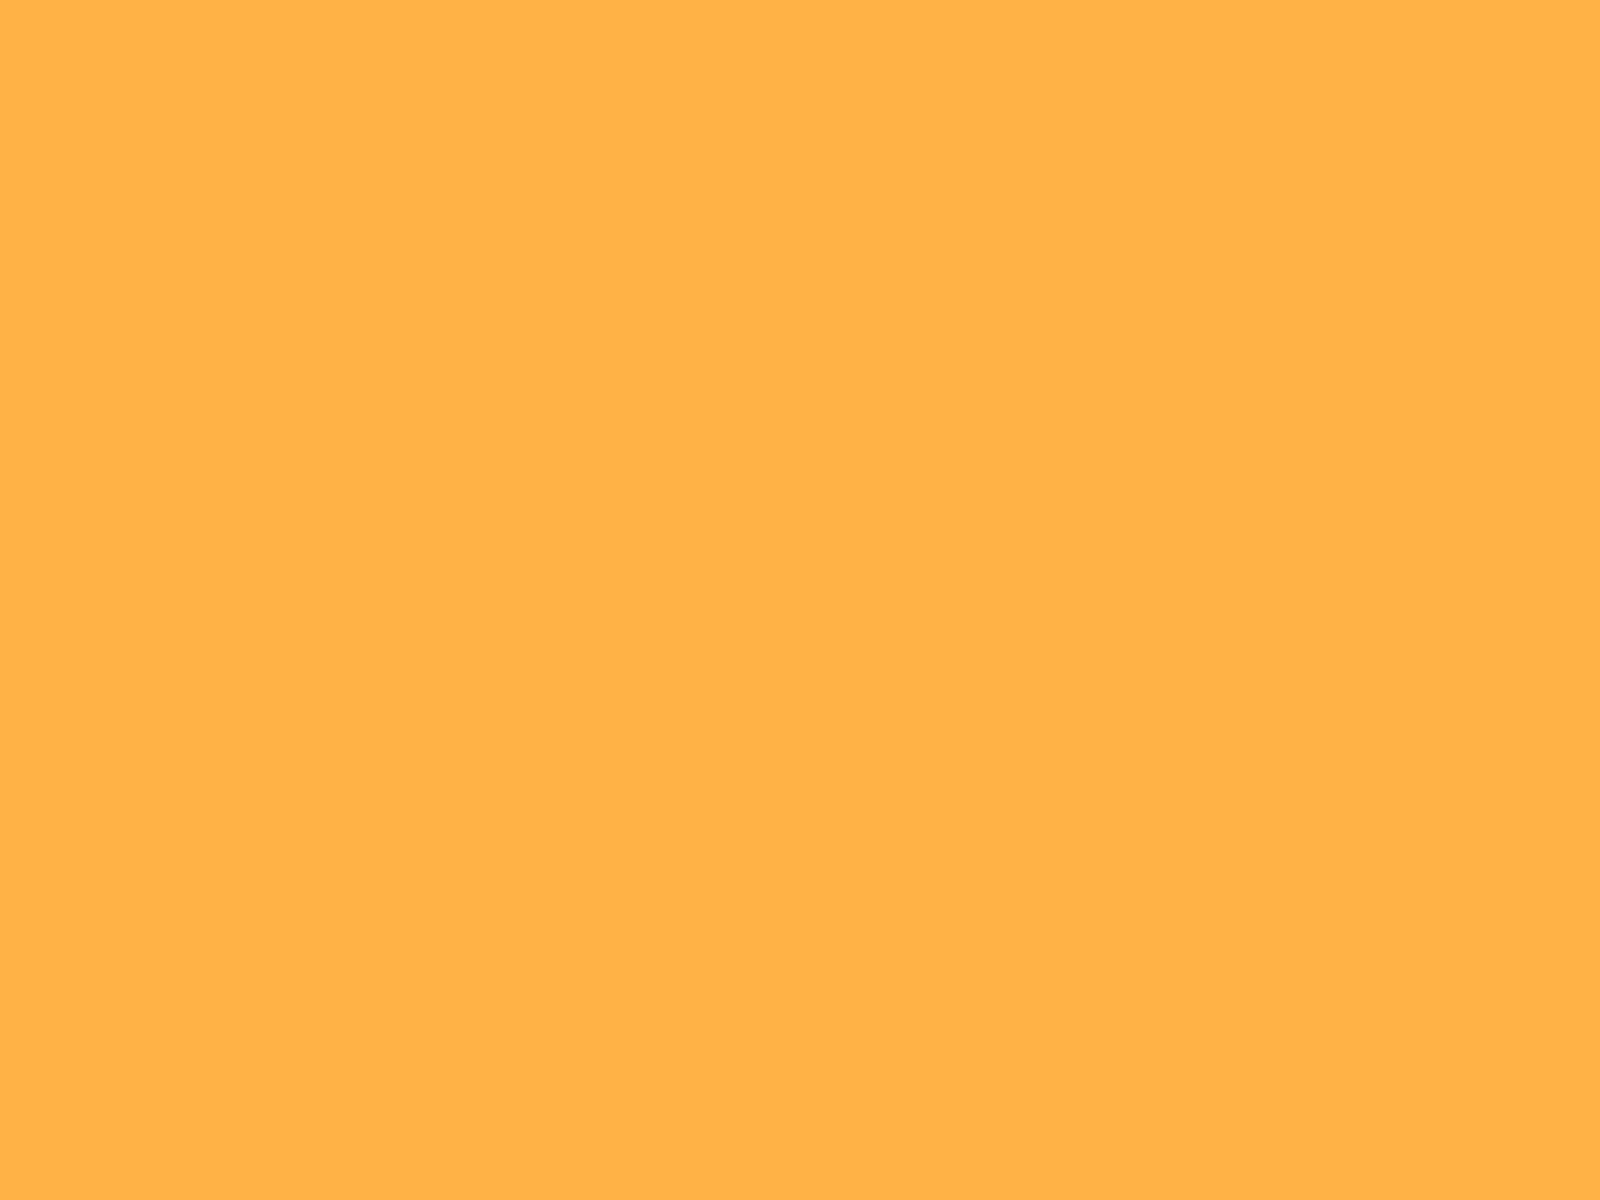 1600x1200 Pastel Orange Solid Color Background